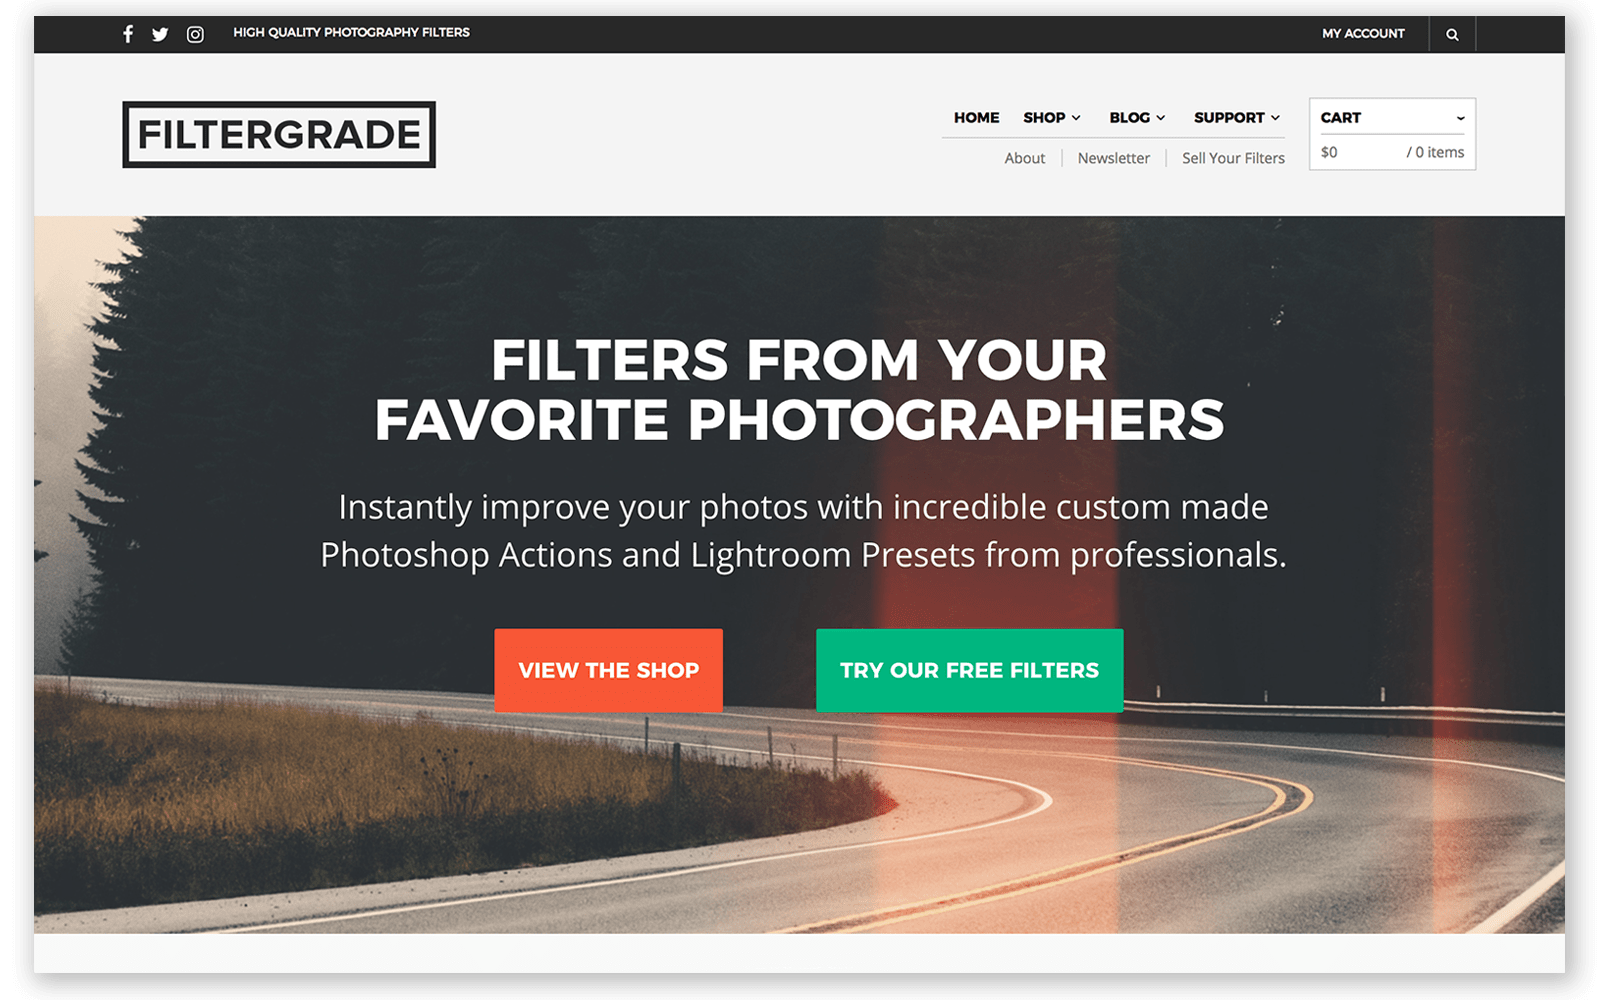 filtergrade website